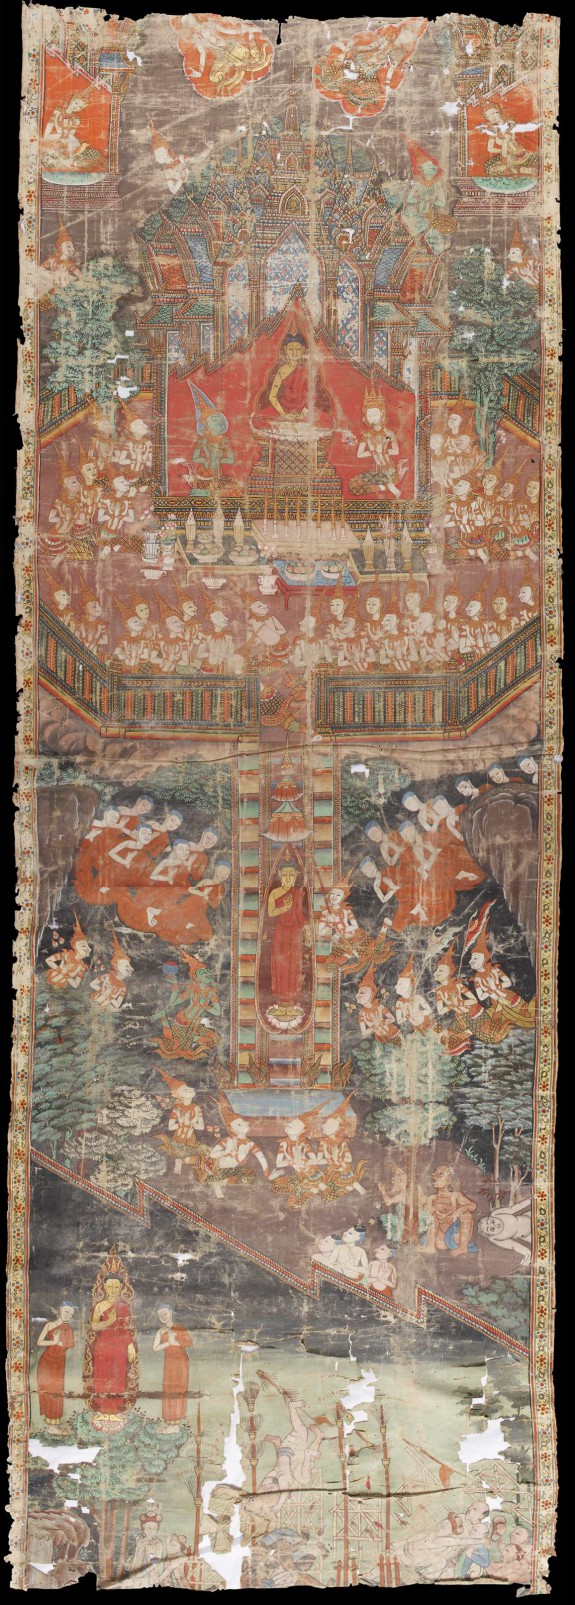 Scenes from the Life of the Buddha with the Buddha's Descent at Center